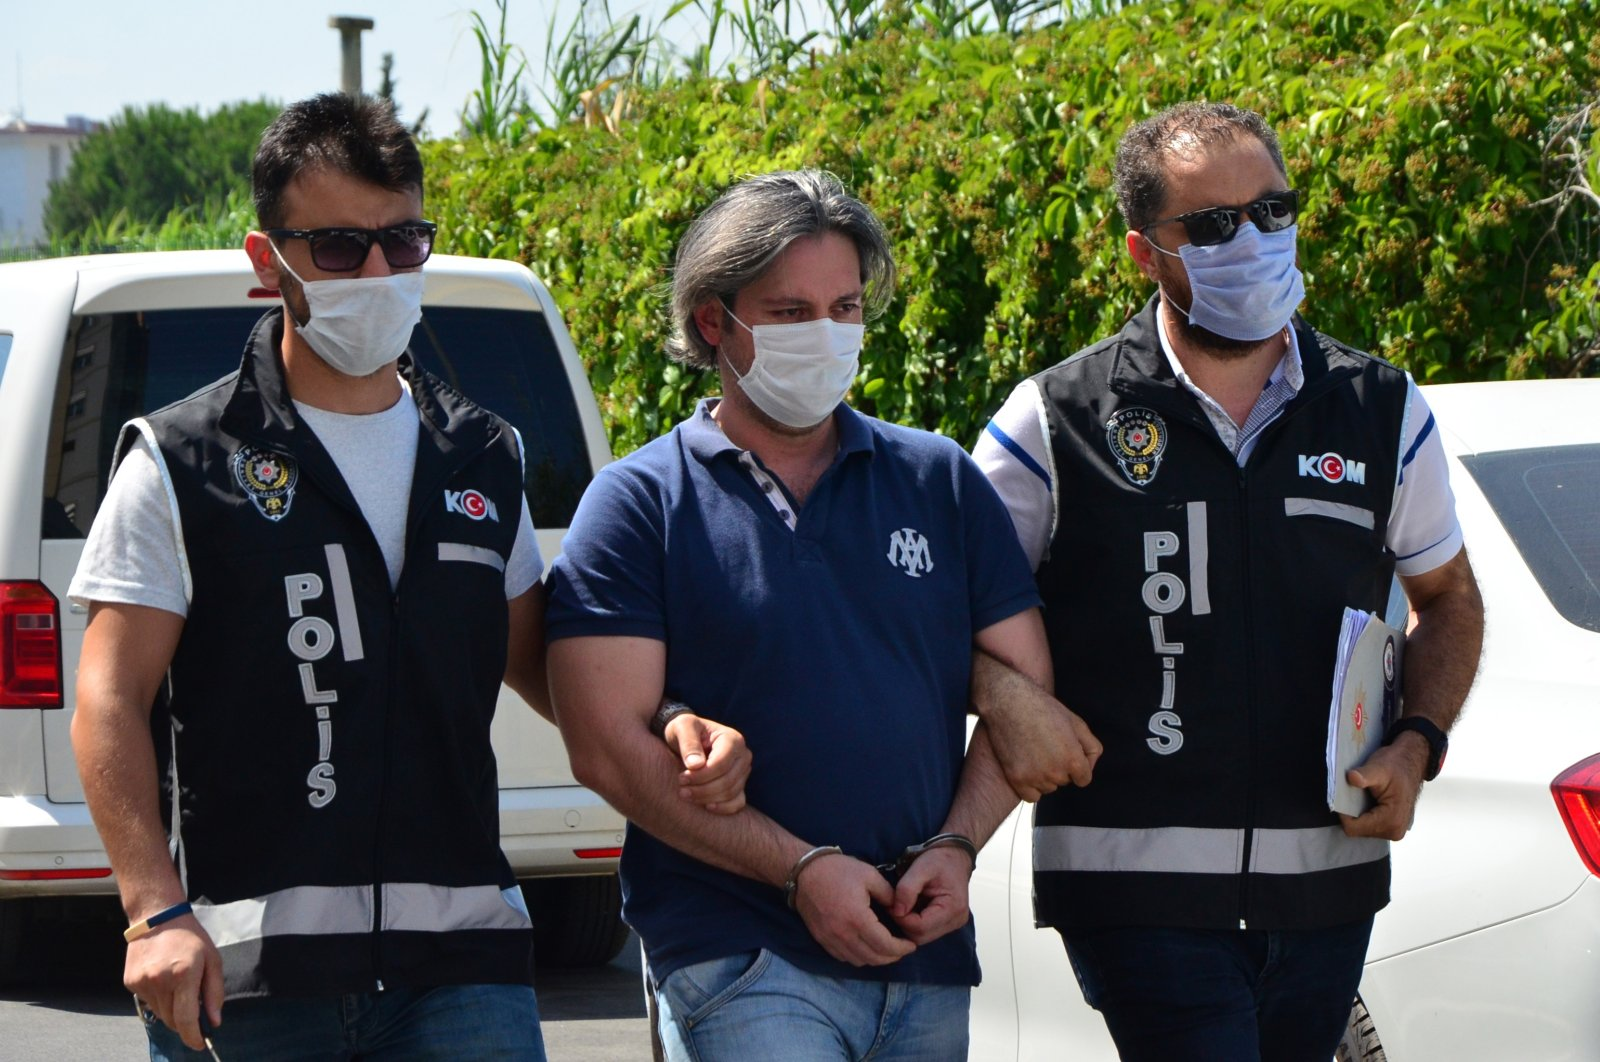 Former police captain Mustafa S. is escorted by officers after he turning himself in, Adana, Turkey, July 24, 2020. (DHA Photo)